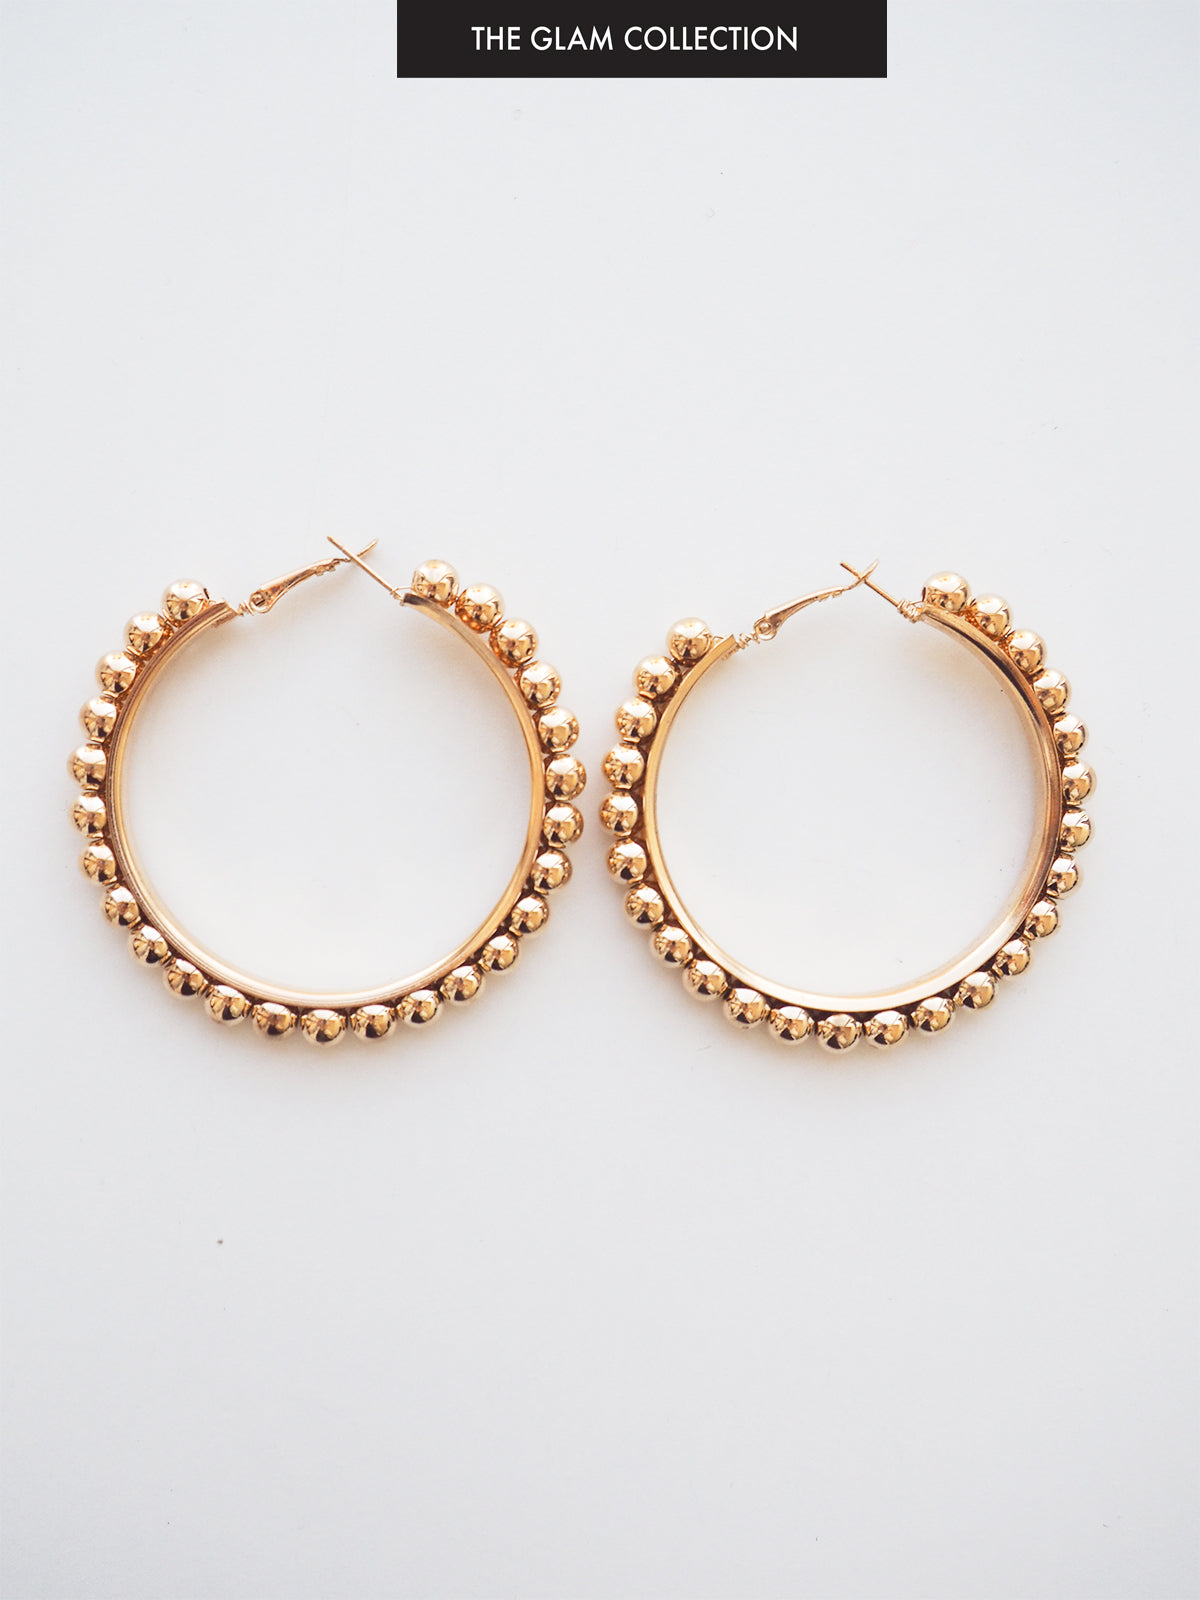 THE VIOLETA LUXE EARRING